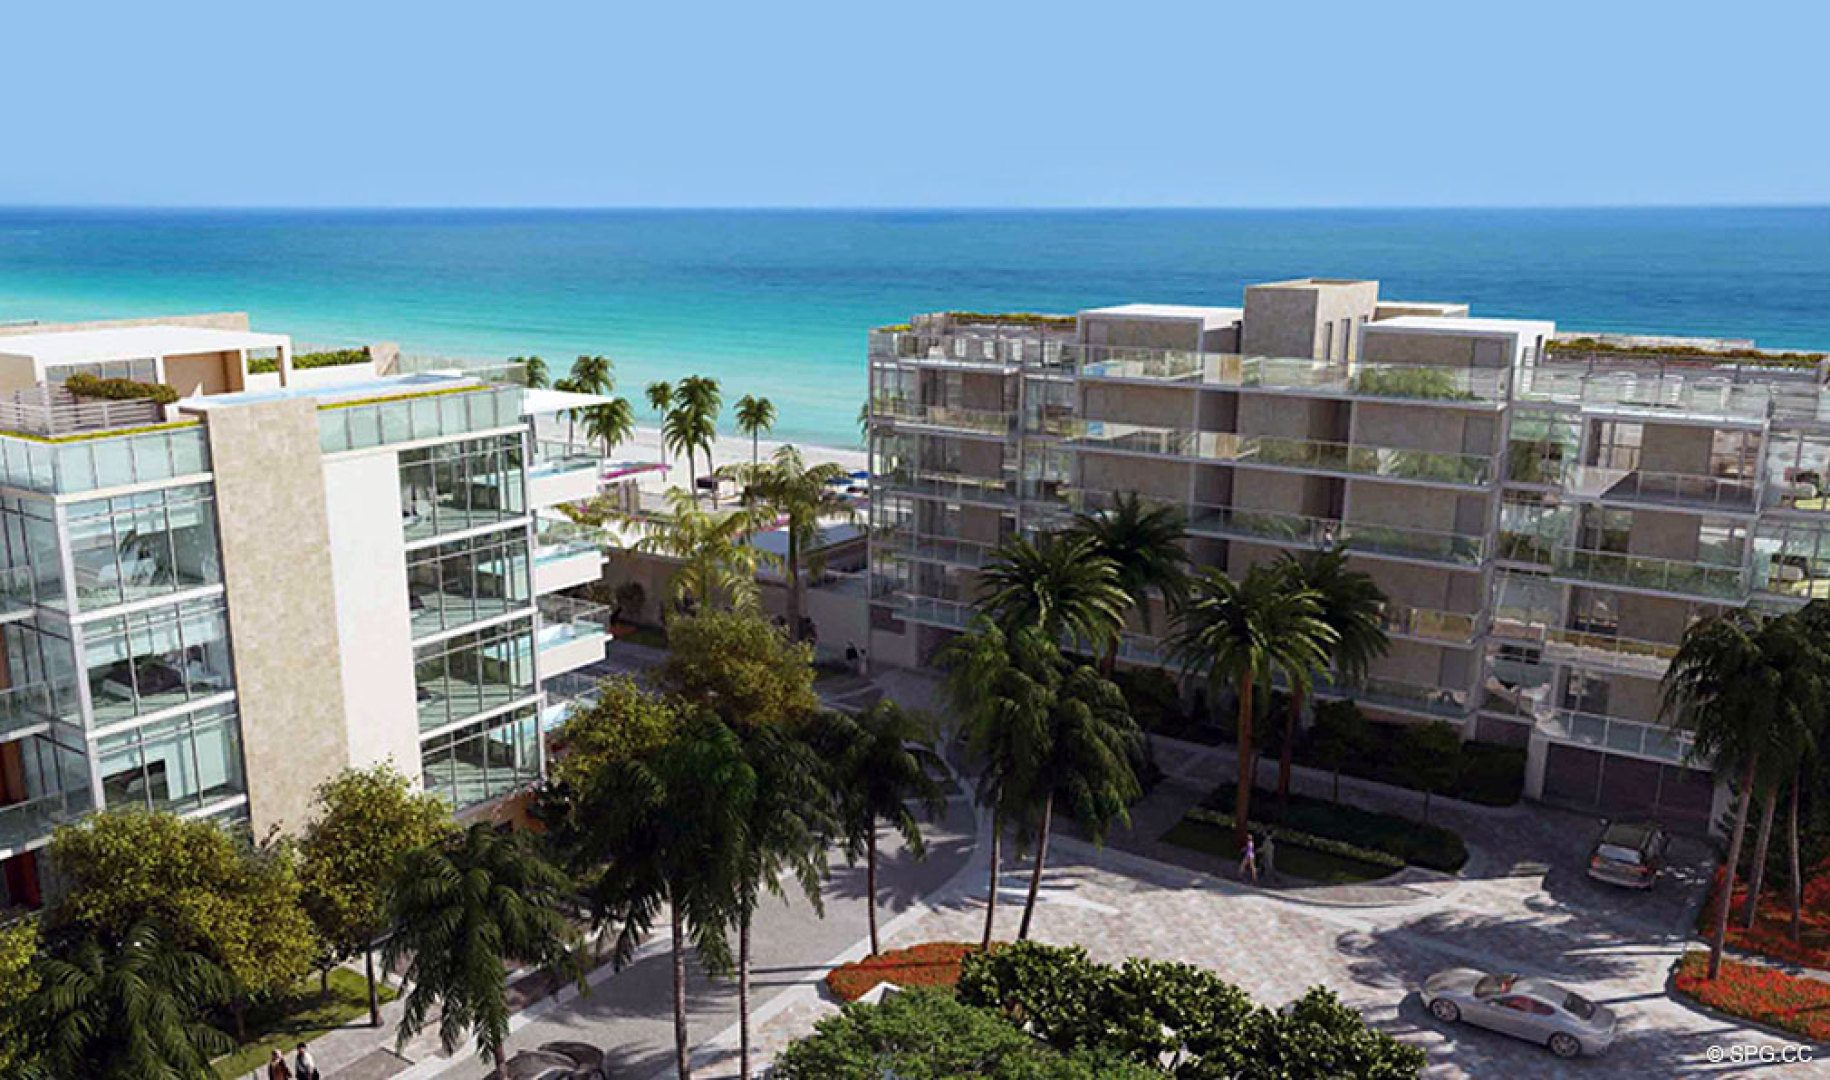 The Two Low-Rise Buildings of Sage Beach, Luxury Oceanfront Condos in Hollywood Beach Florida 33019